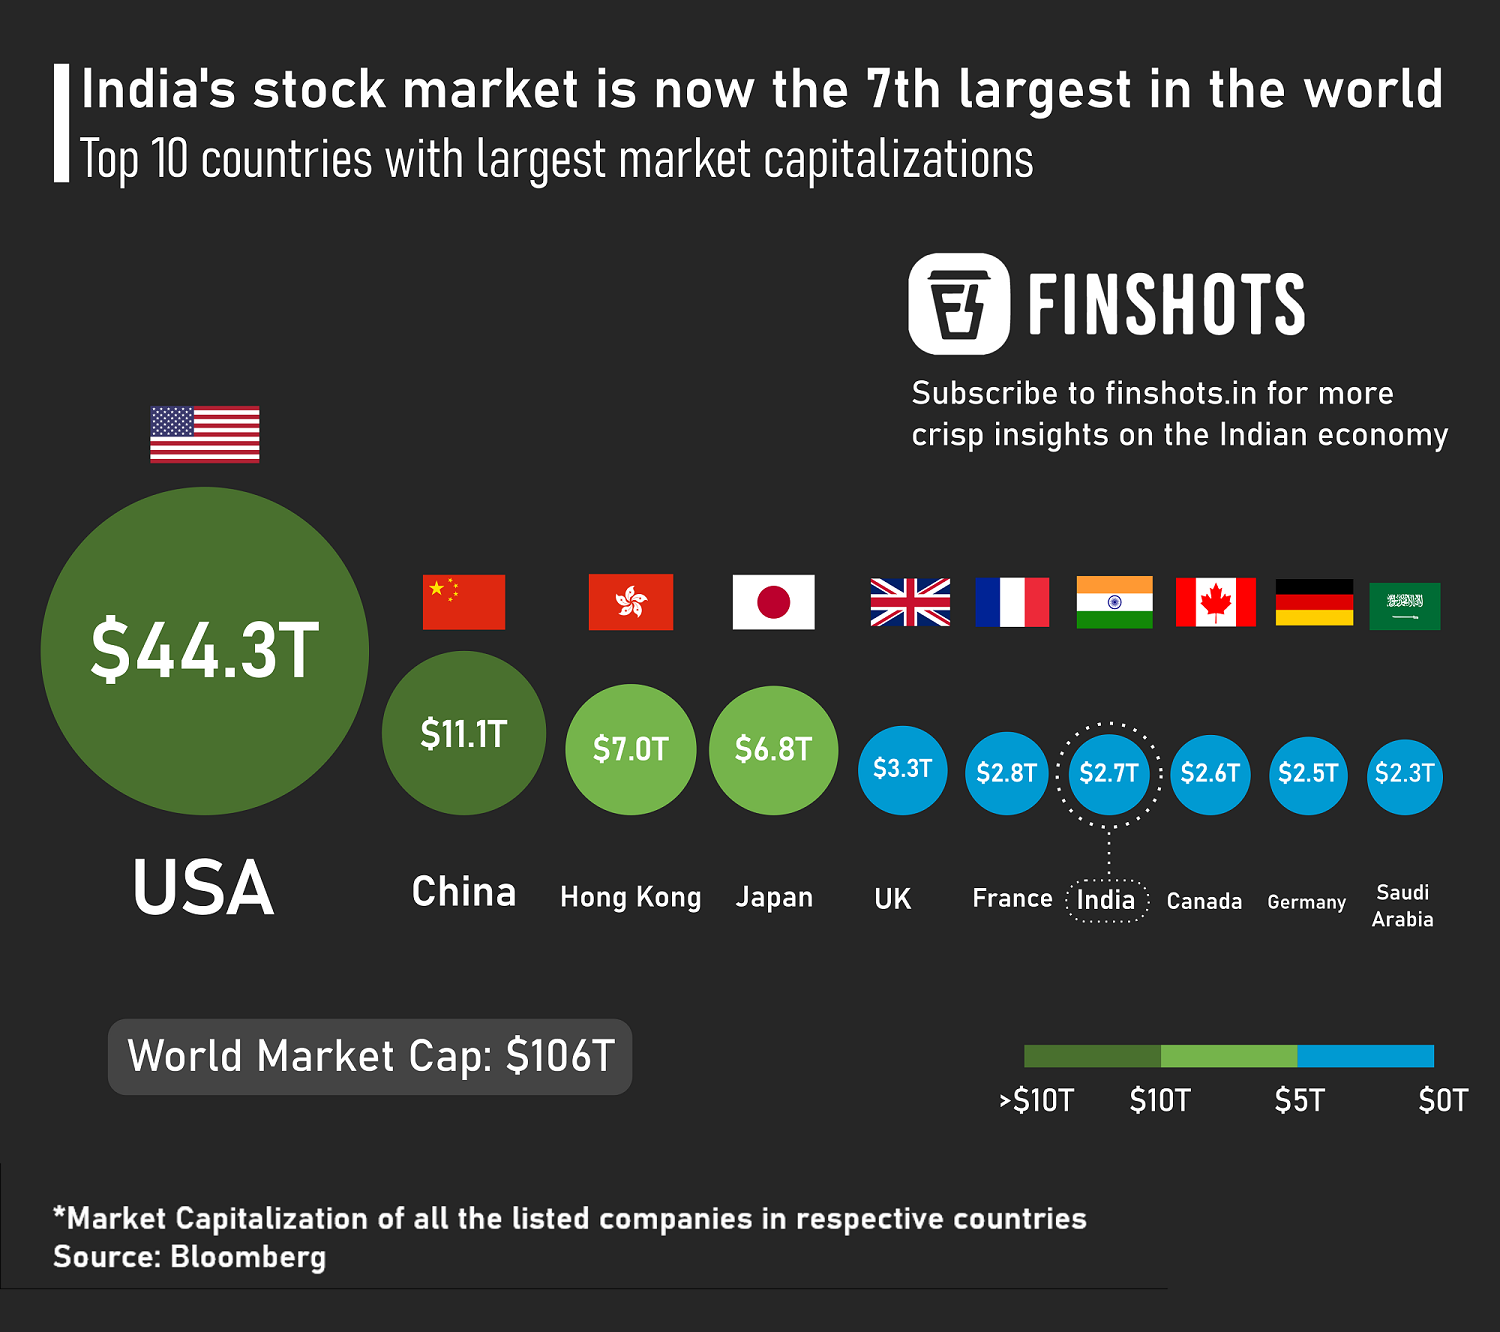 India's stock market is now the 7th largest globally